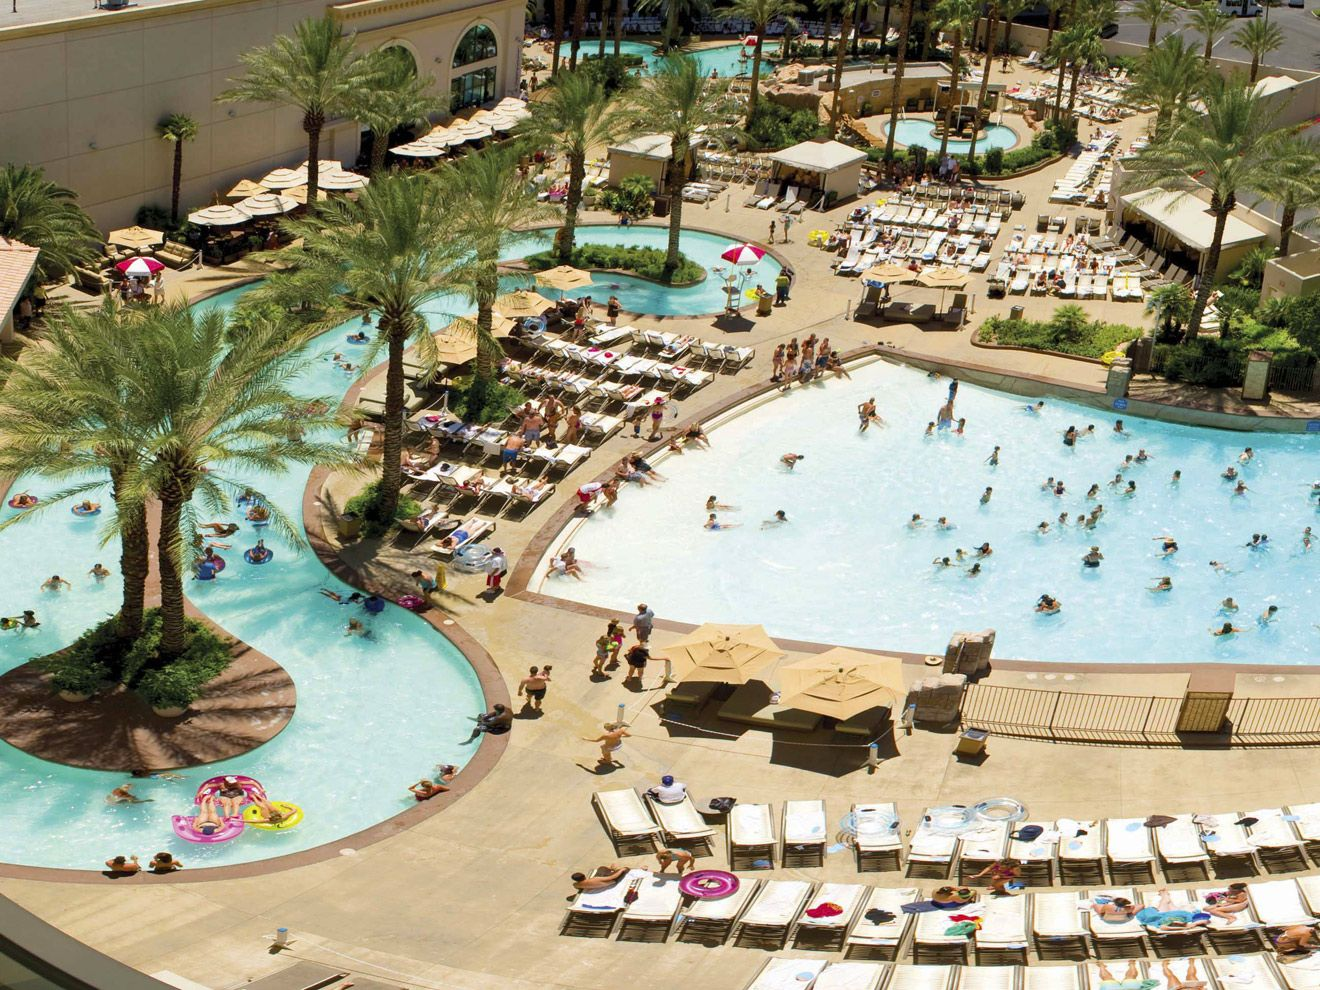 Best Family Pools In Las Vegas For Kids Family Vacation Hub Las Vegas With Kids Las Vegas Pool Vegas Pools